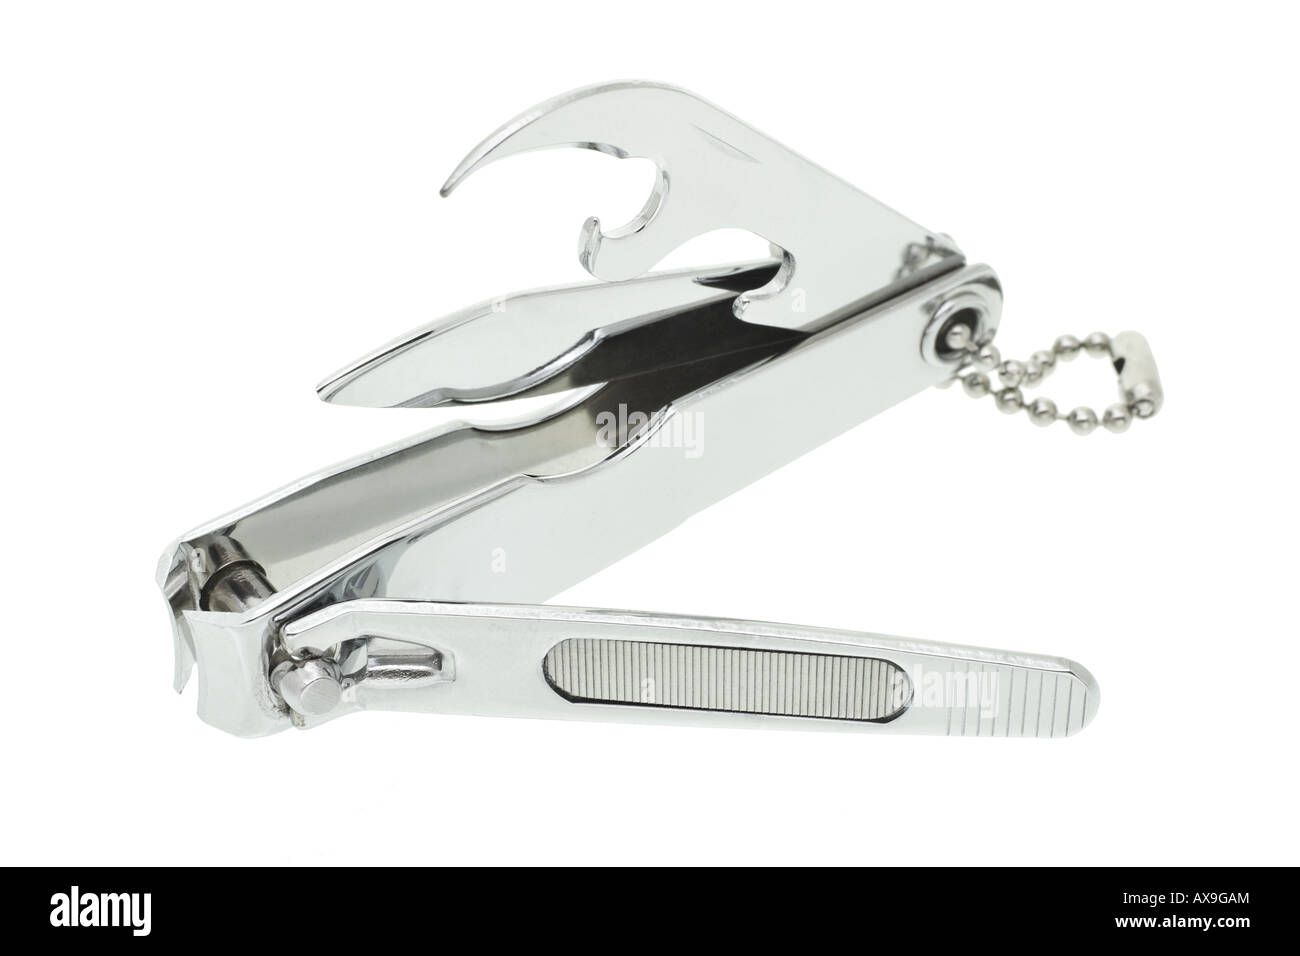 Multi functions nail clipper on white background Stock Photo ...